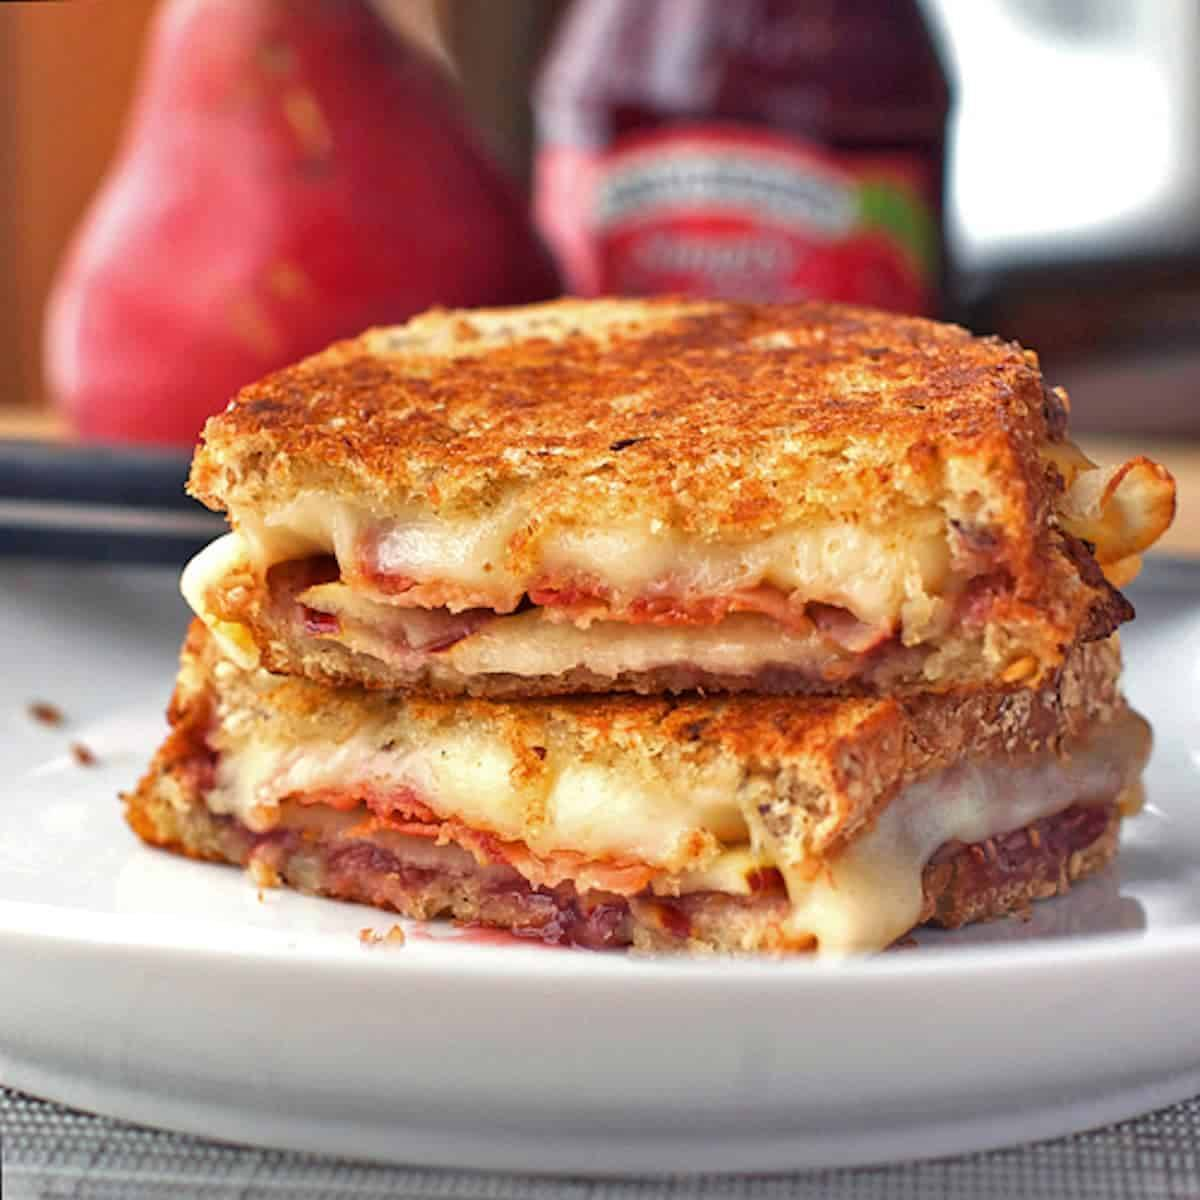 Grilled cheese sandwich stuffed with bacon, pear slices, and raspberry preserves.